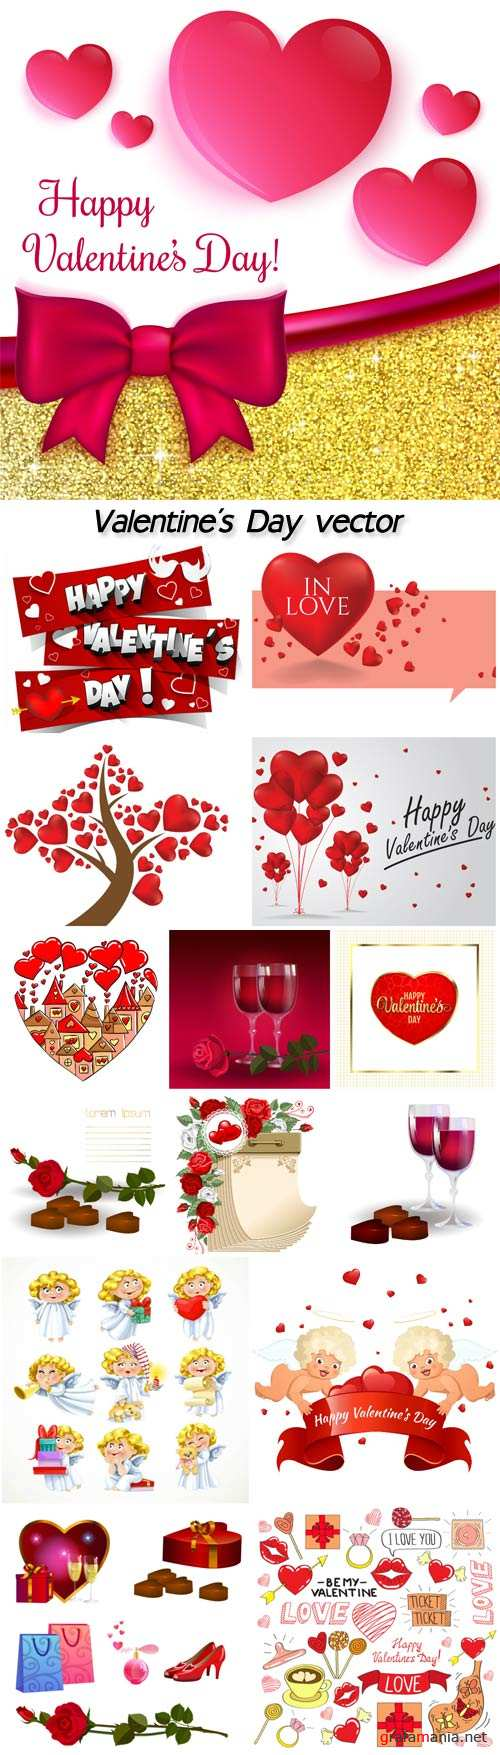 Valentine's Day vector, flowers, hearts, cupids